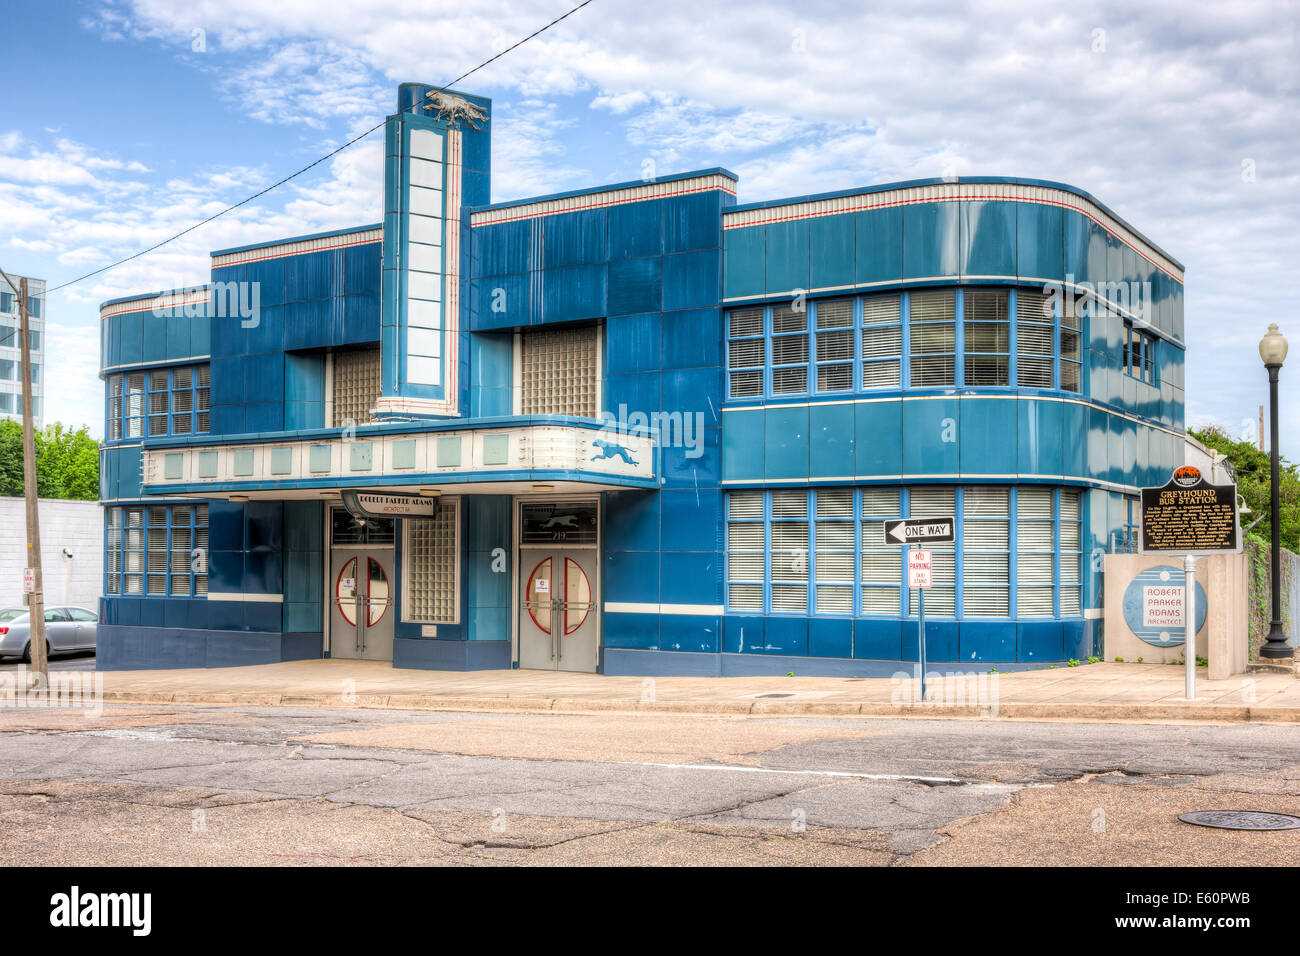 The historic greyhound bus station in jackson mississippi for Architecture firms jackson ms